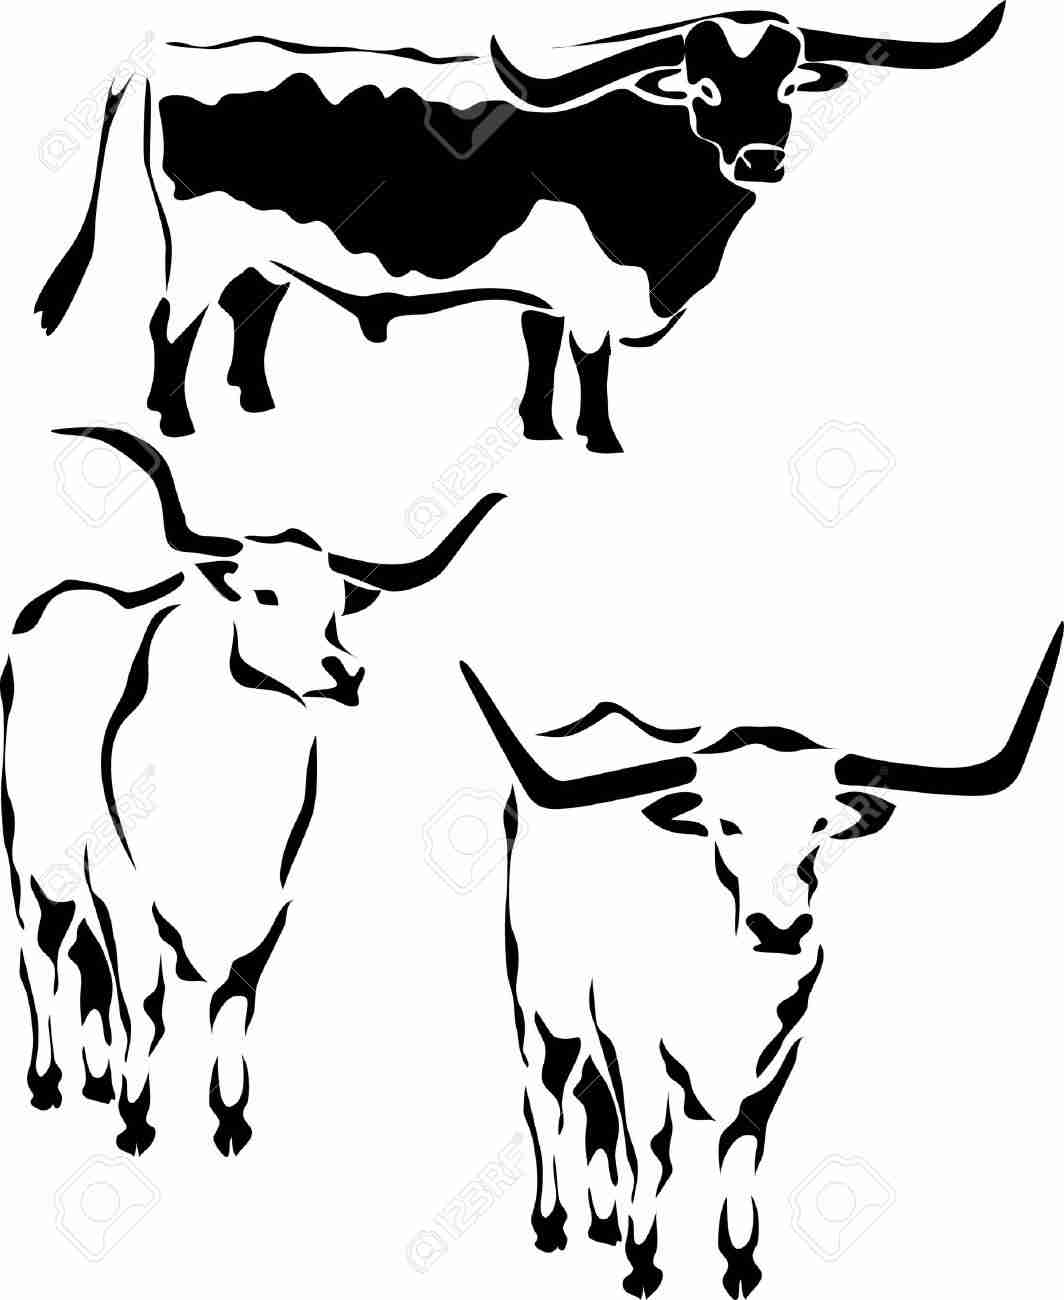 1064x1300 Silhouettes Cattle Breed Texas Longhorn Stock Vector 160377 Lovely